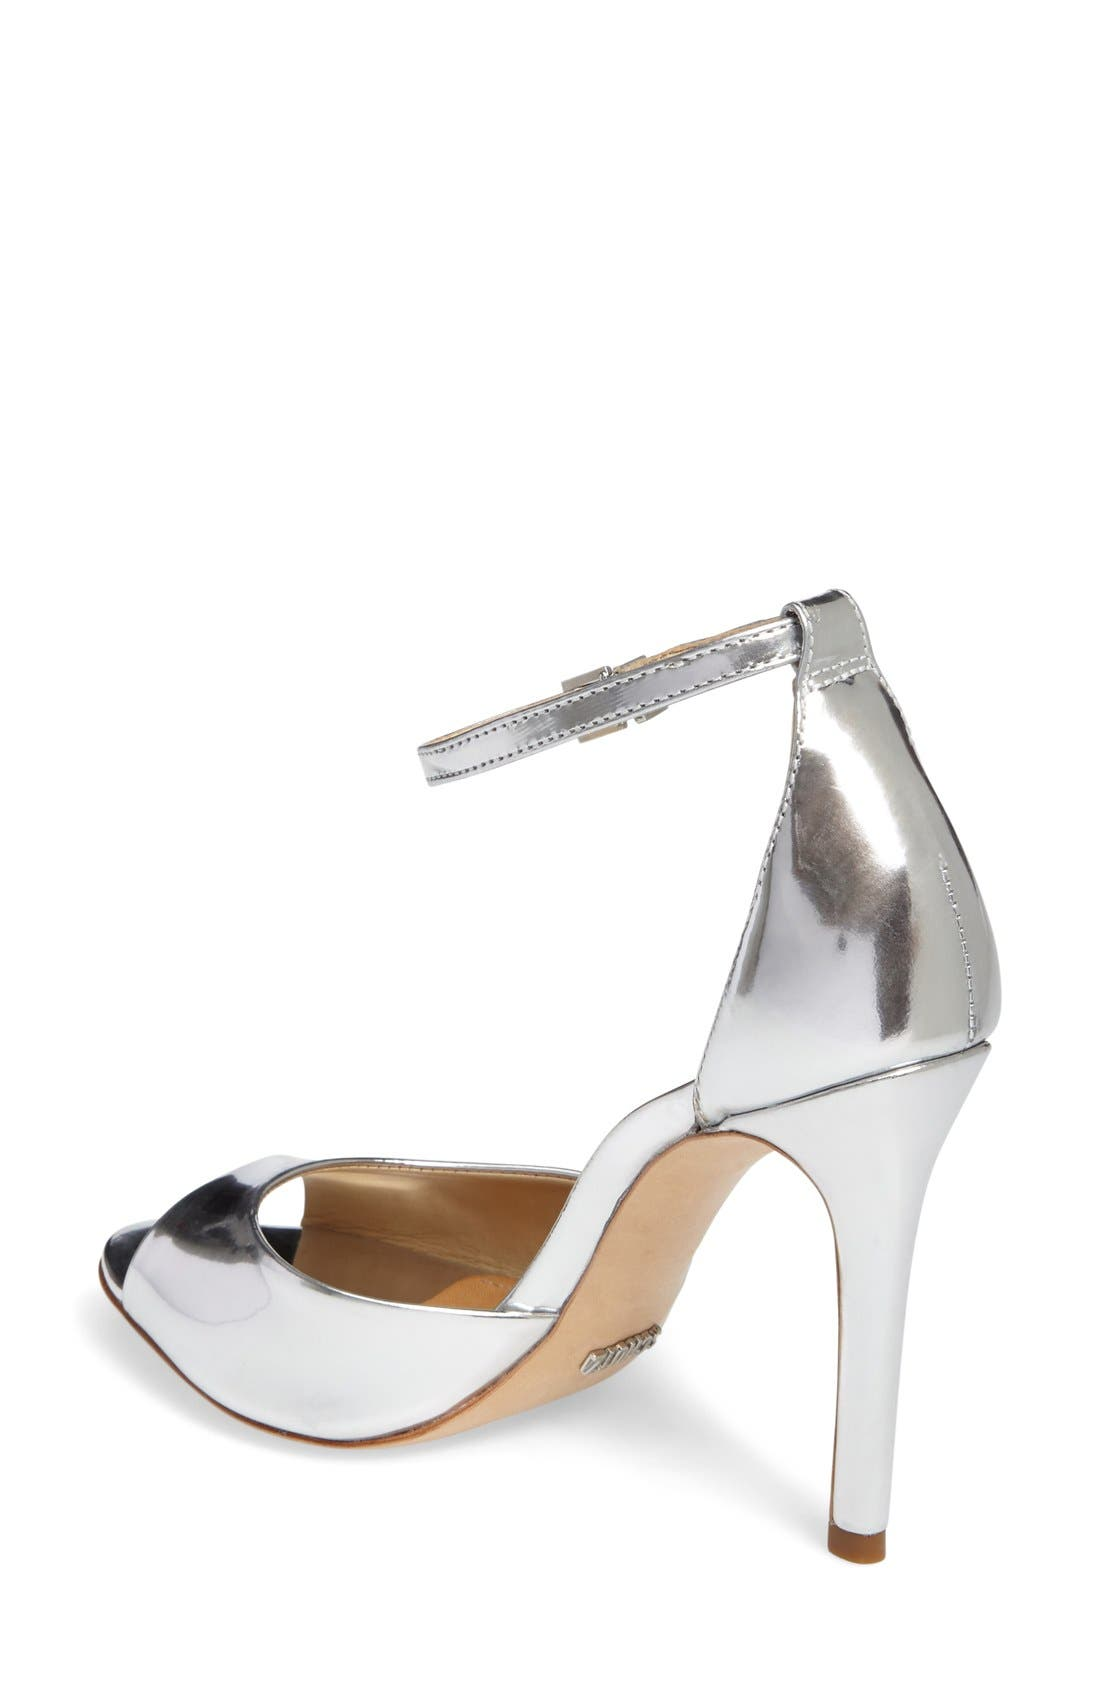 Saasha Lee Ankle Strap Sandal,                             Alternate thumbnail 2, color,                             Silver Leather